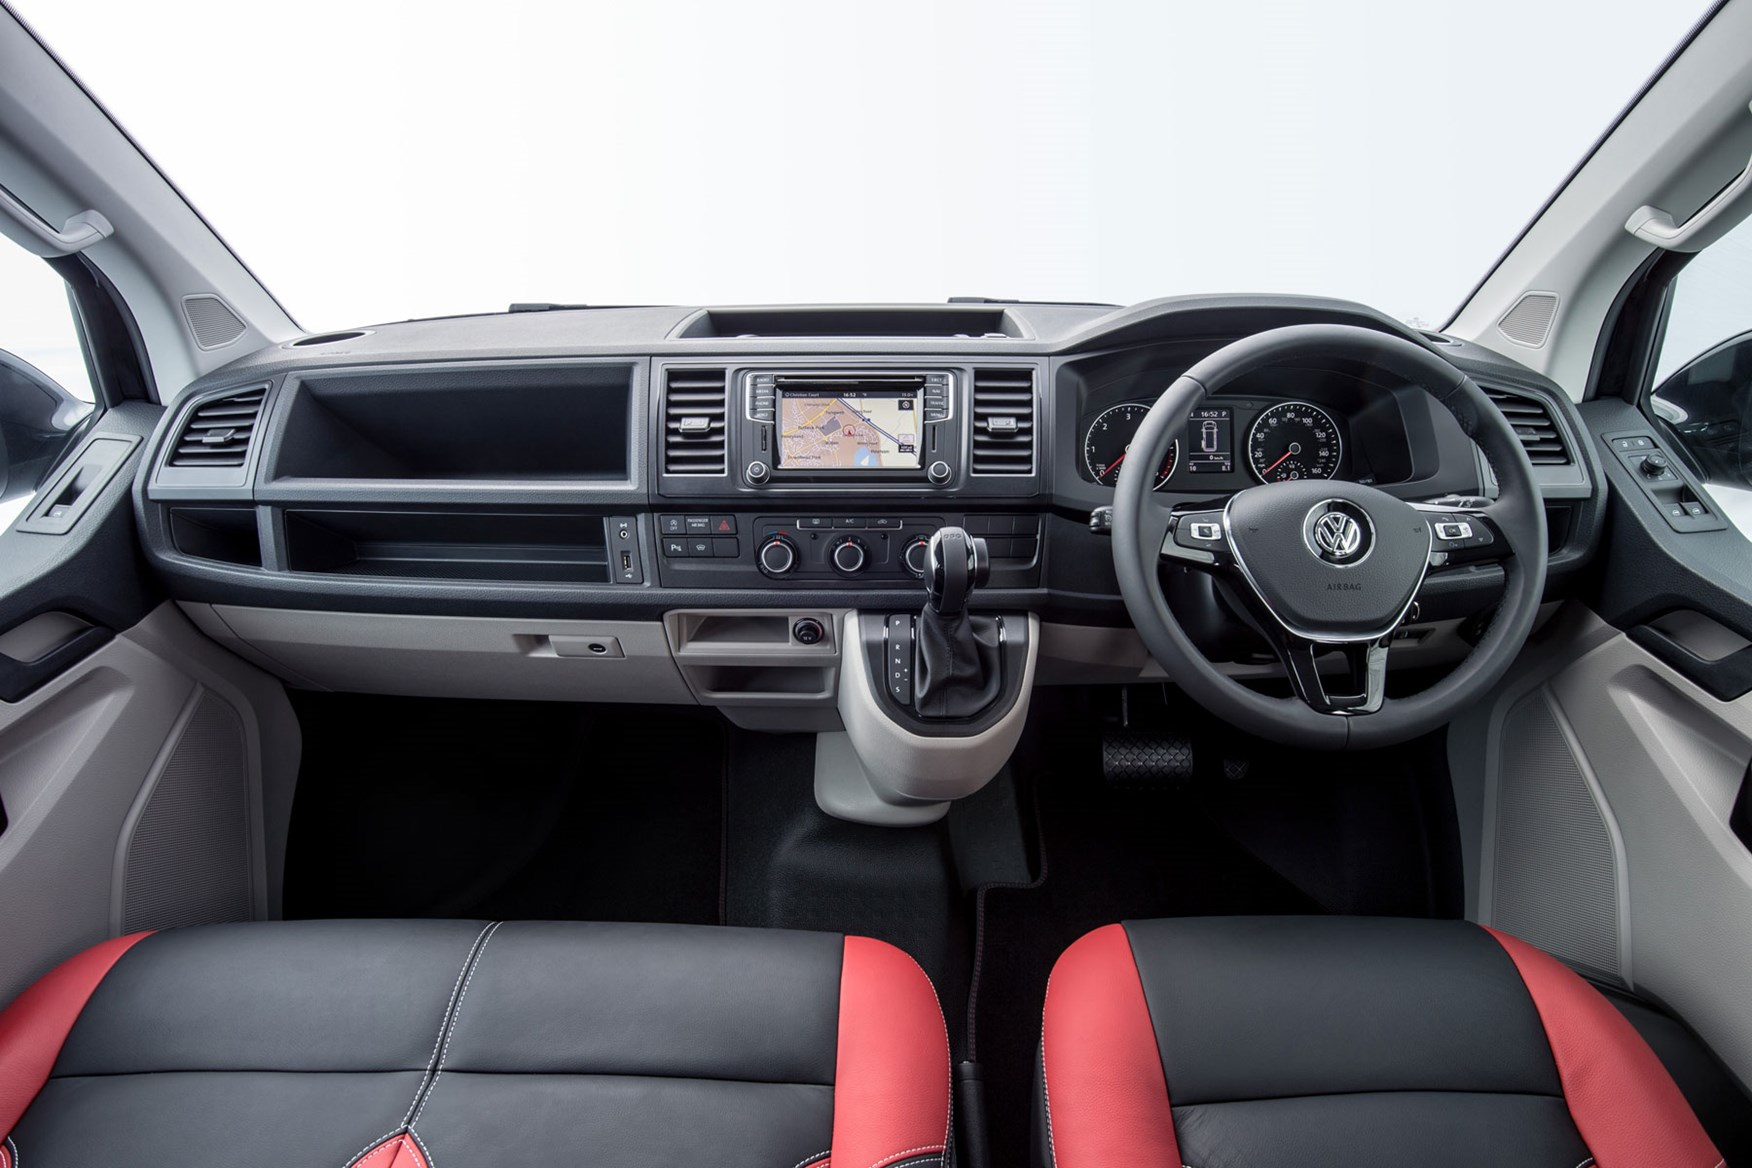 VW Transporter (2015-on) cab interior